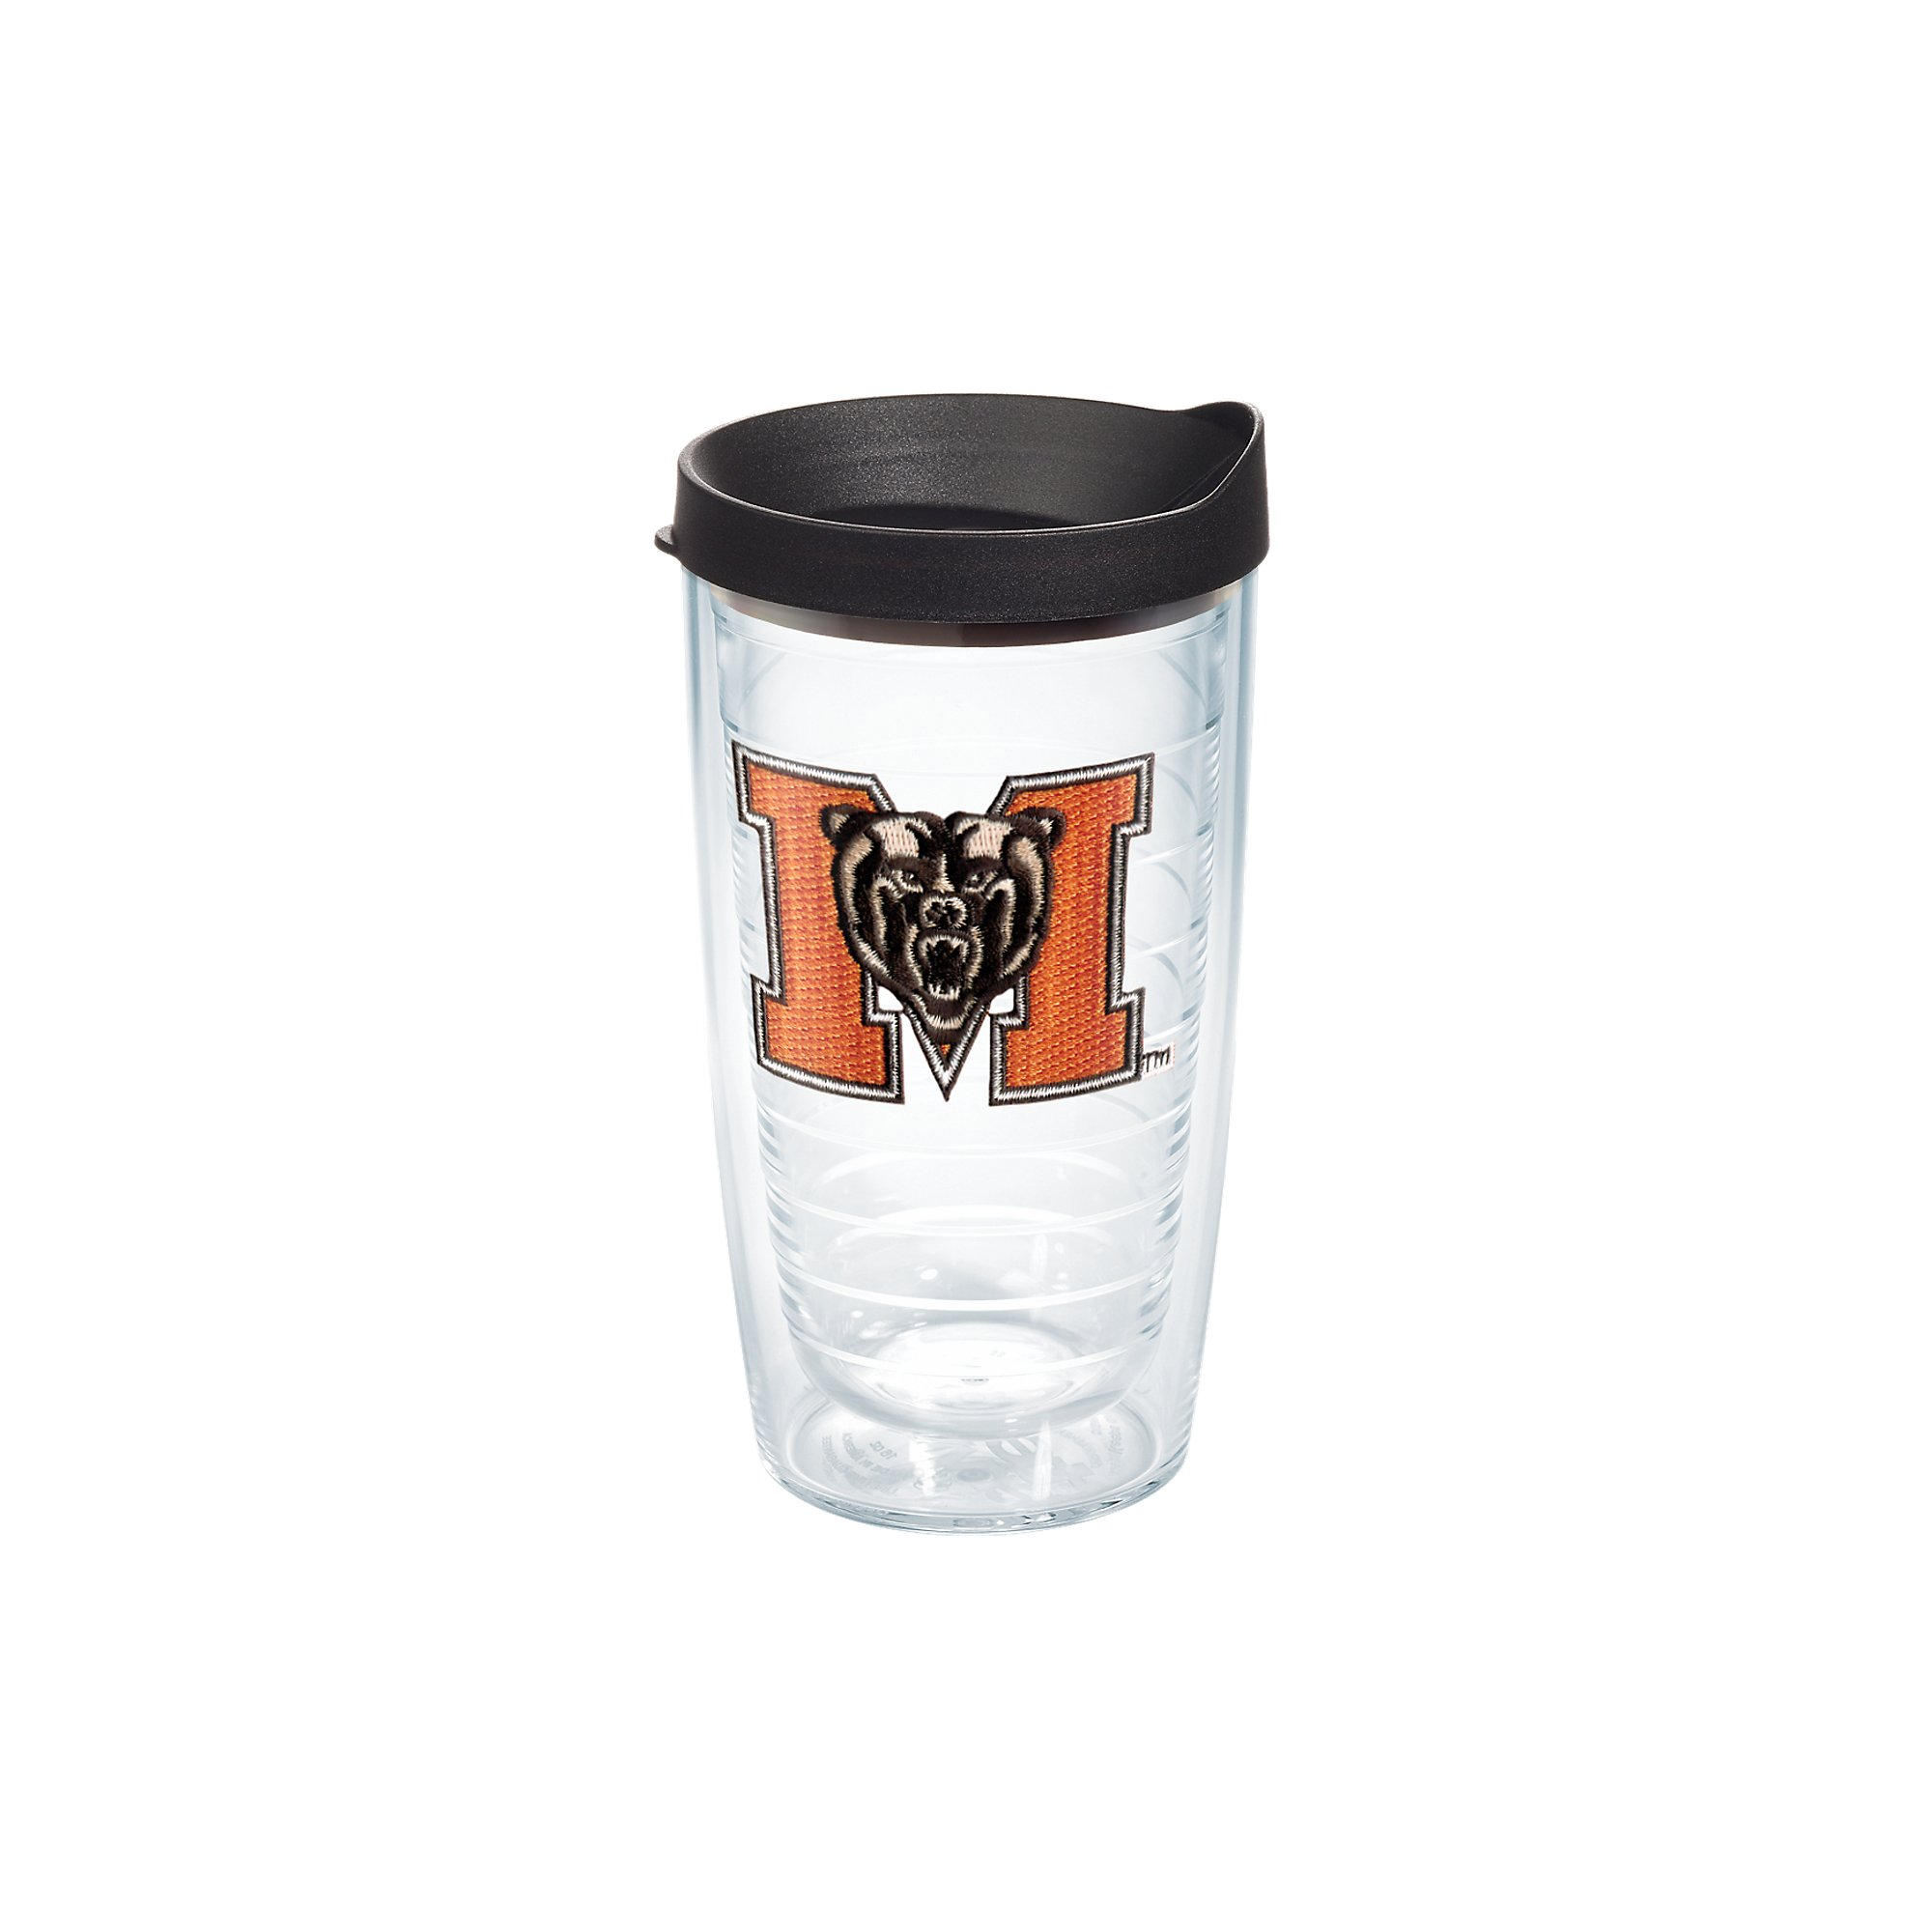 Tervis 1136059 Mercer Bears Logo Tumbler with Emblem and Black Lid 16oz, Clear